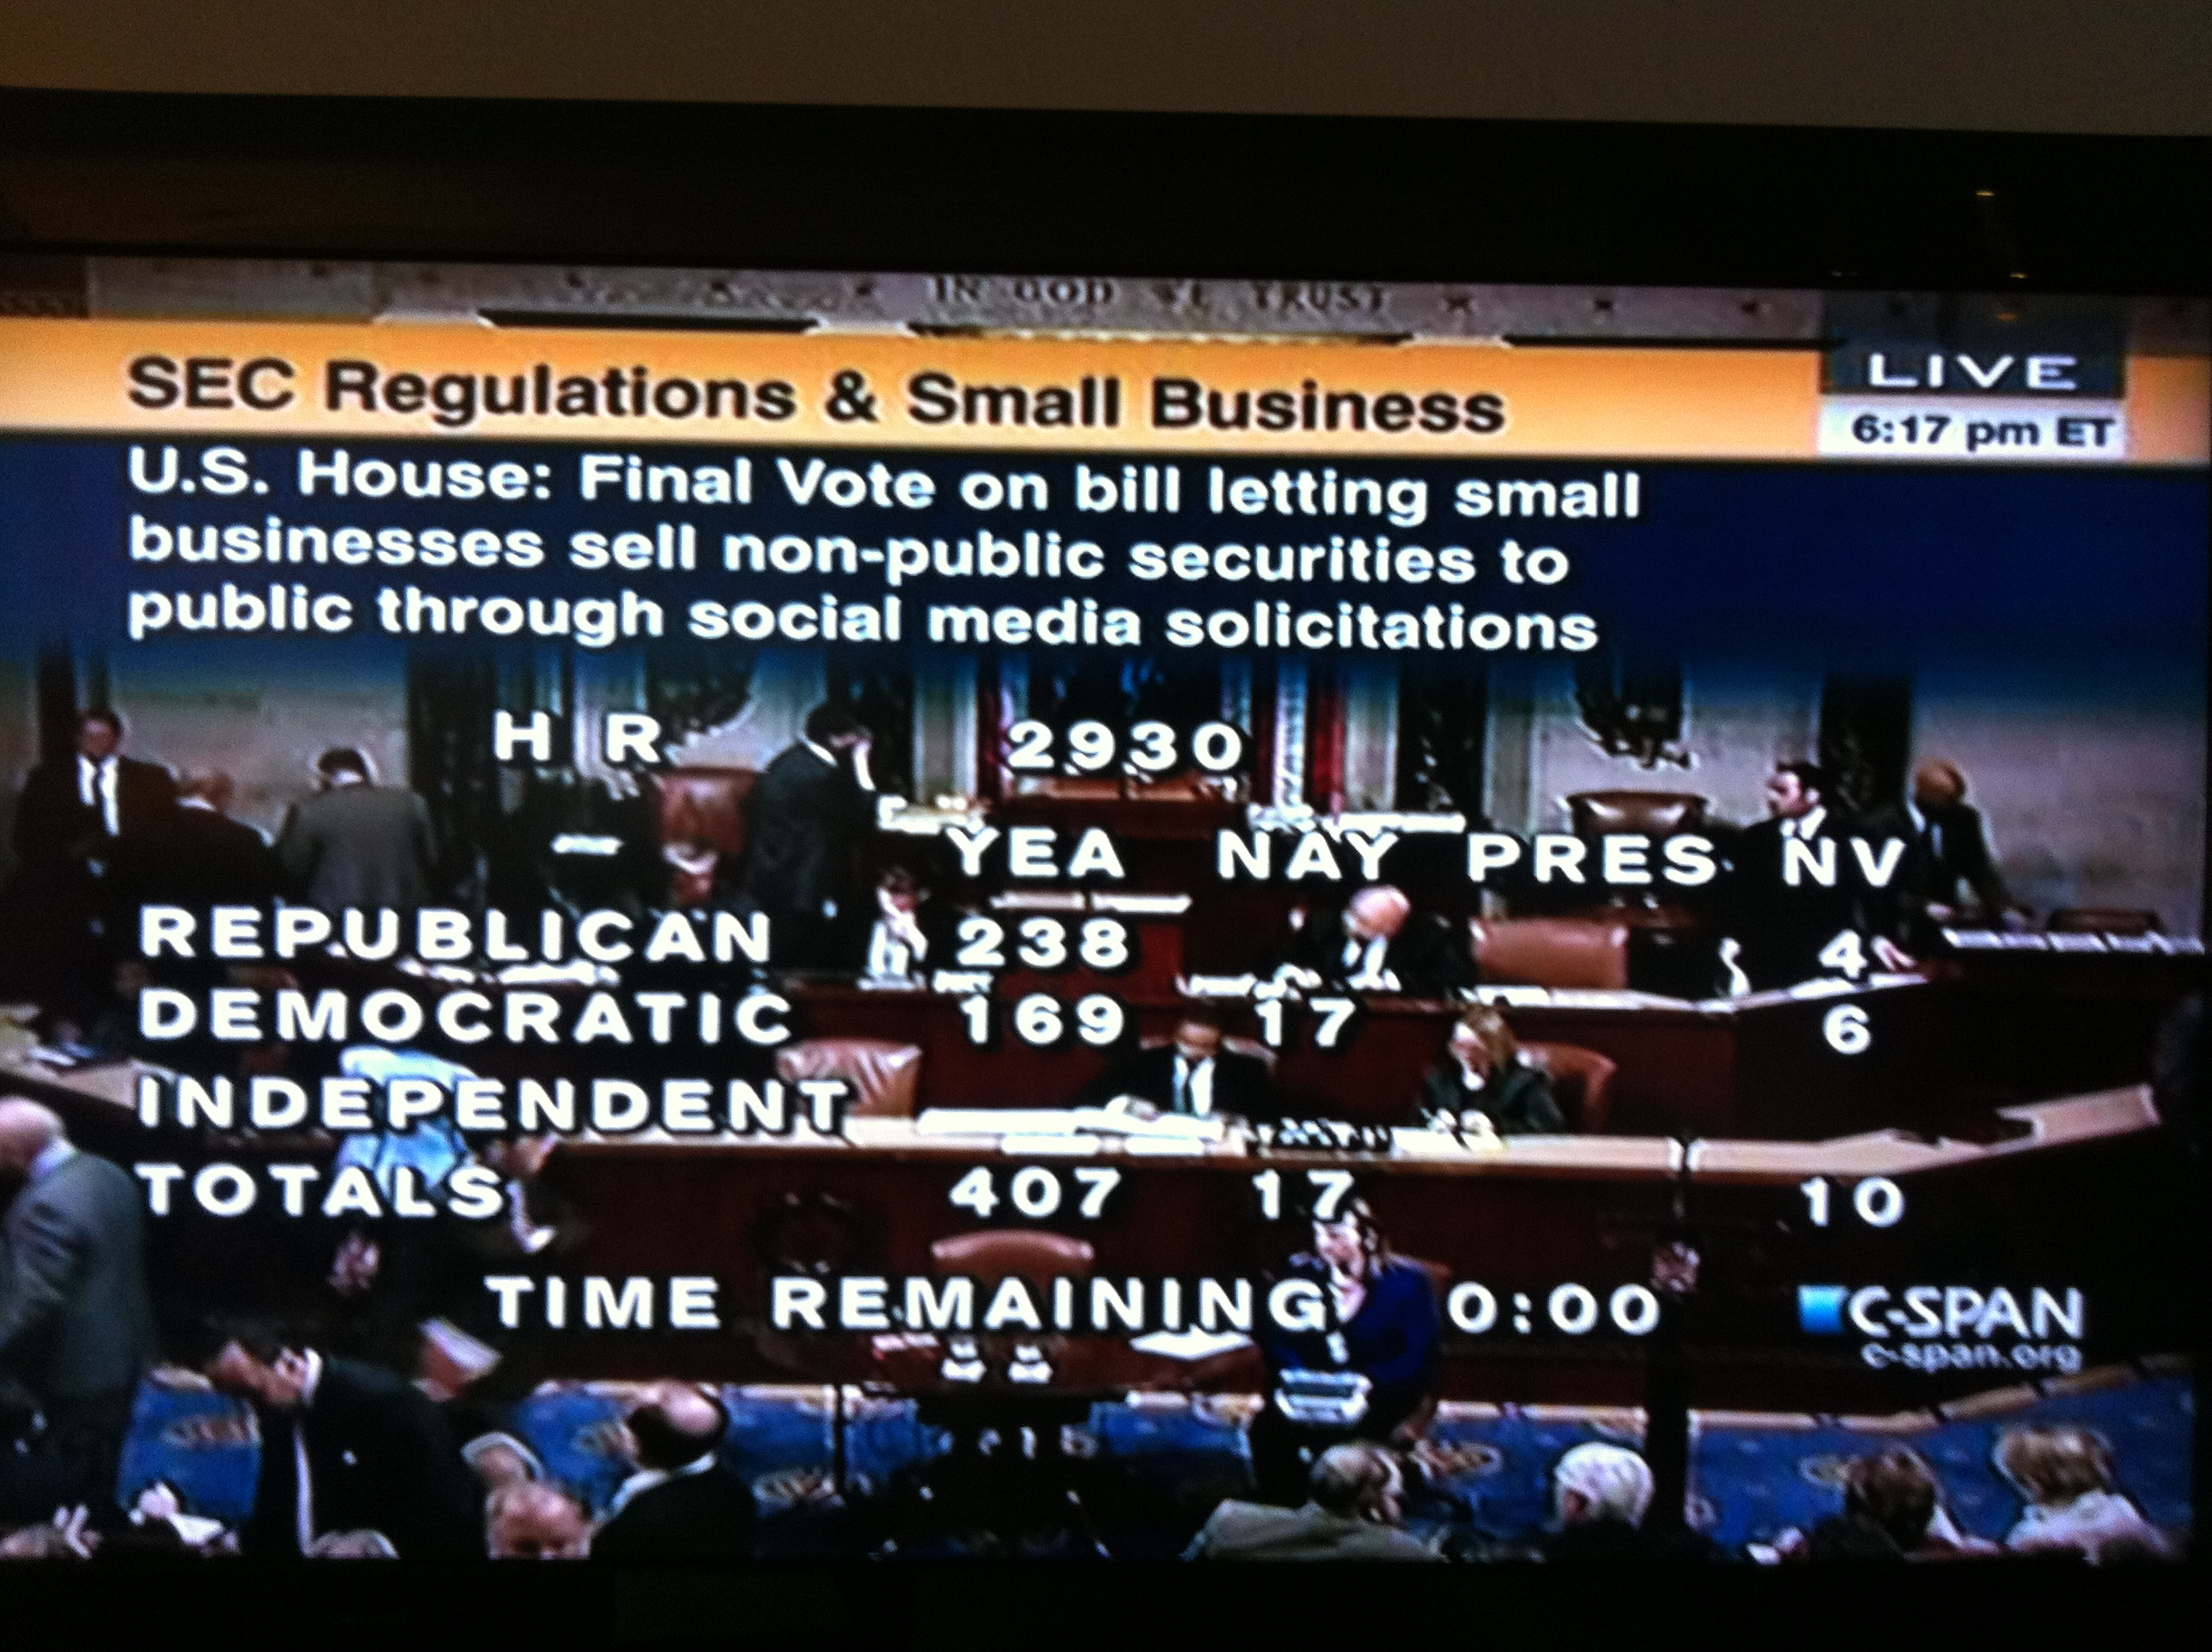 HR2930 Vote - 407 to 17